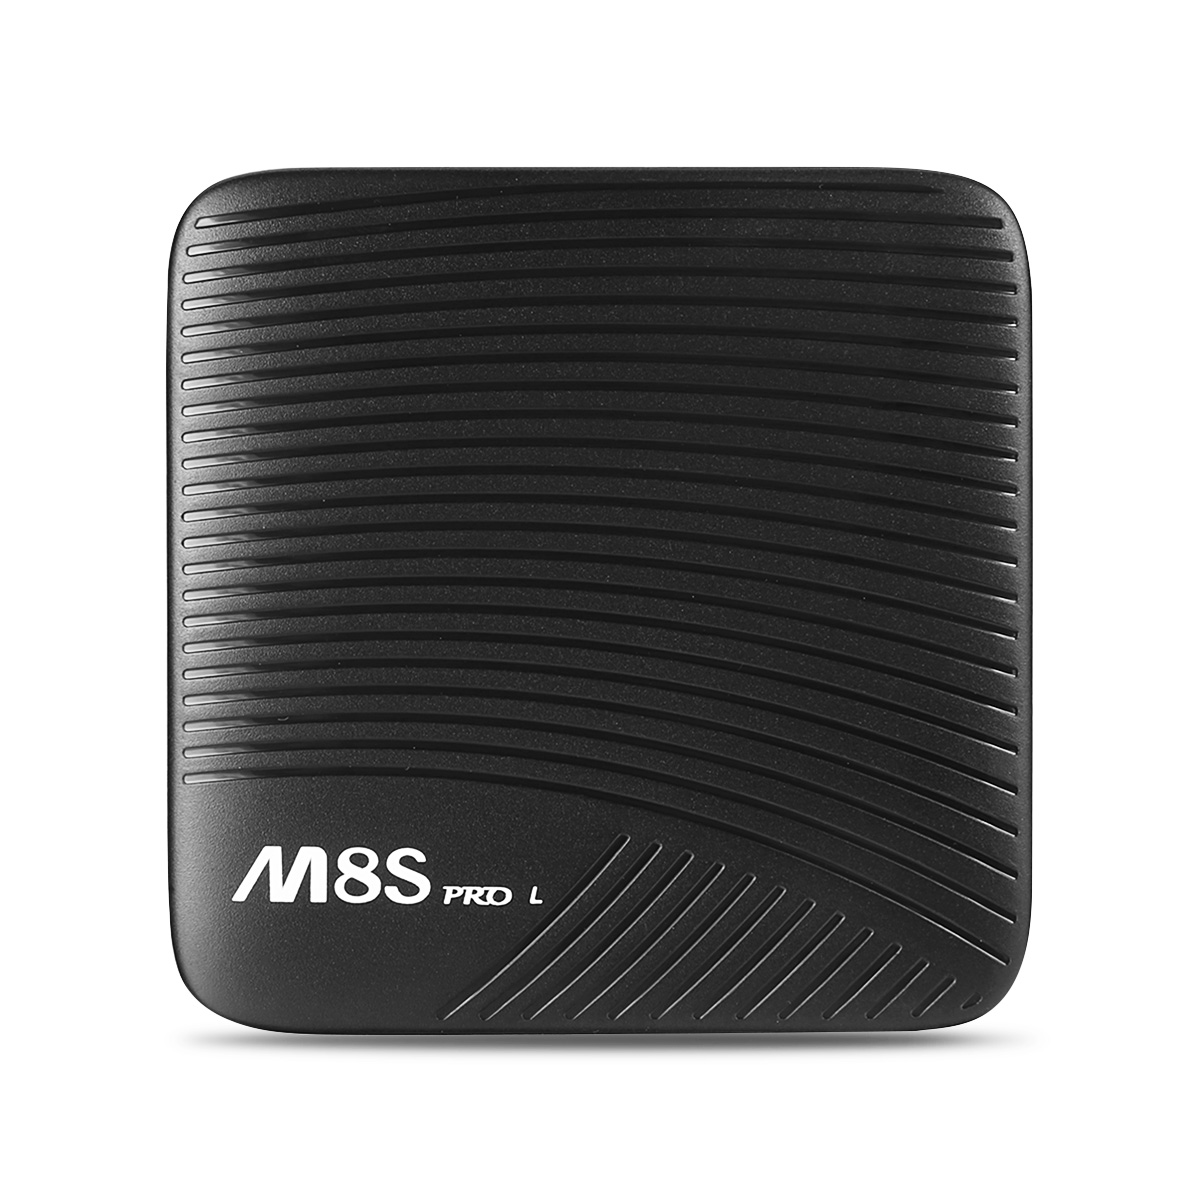 M8S PRO L Android 7.1 Amlogic S-912 Octa Core 3GB+32GB Mali-T820MP3 GPU 4K Dual WIFI BT OTA Smart TV Box EU телеприставка vsmart m8 amlogic s802 2 8 2ghz 4k android ota hdmi bluetooth 4 0